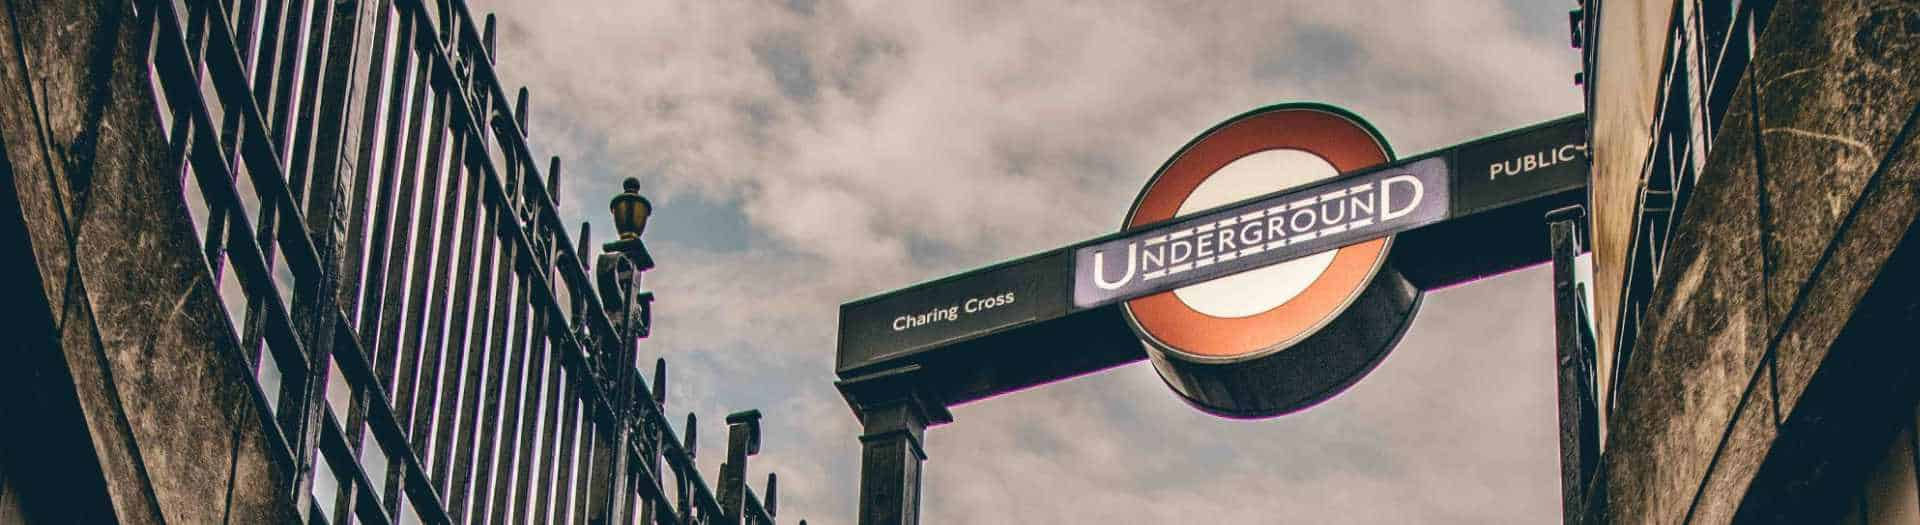 London Underground oval sign at Charring cross